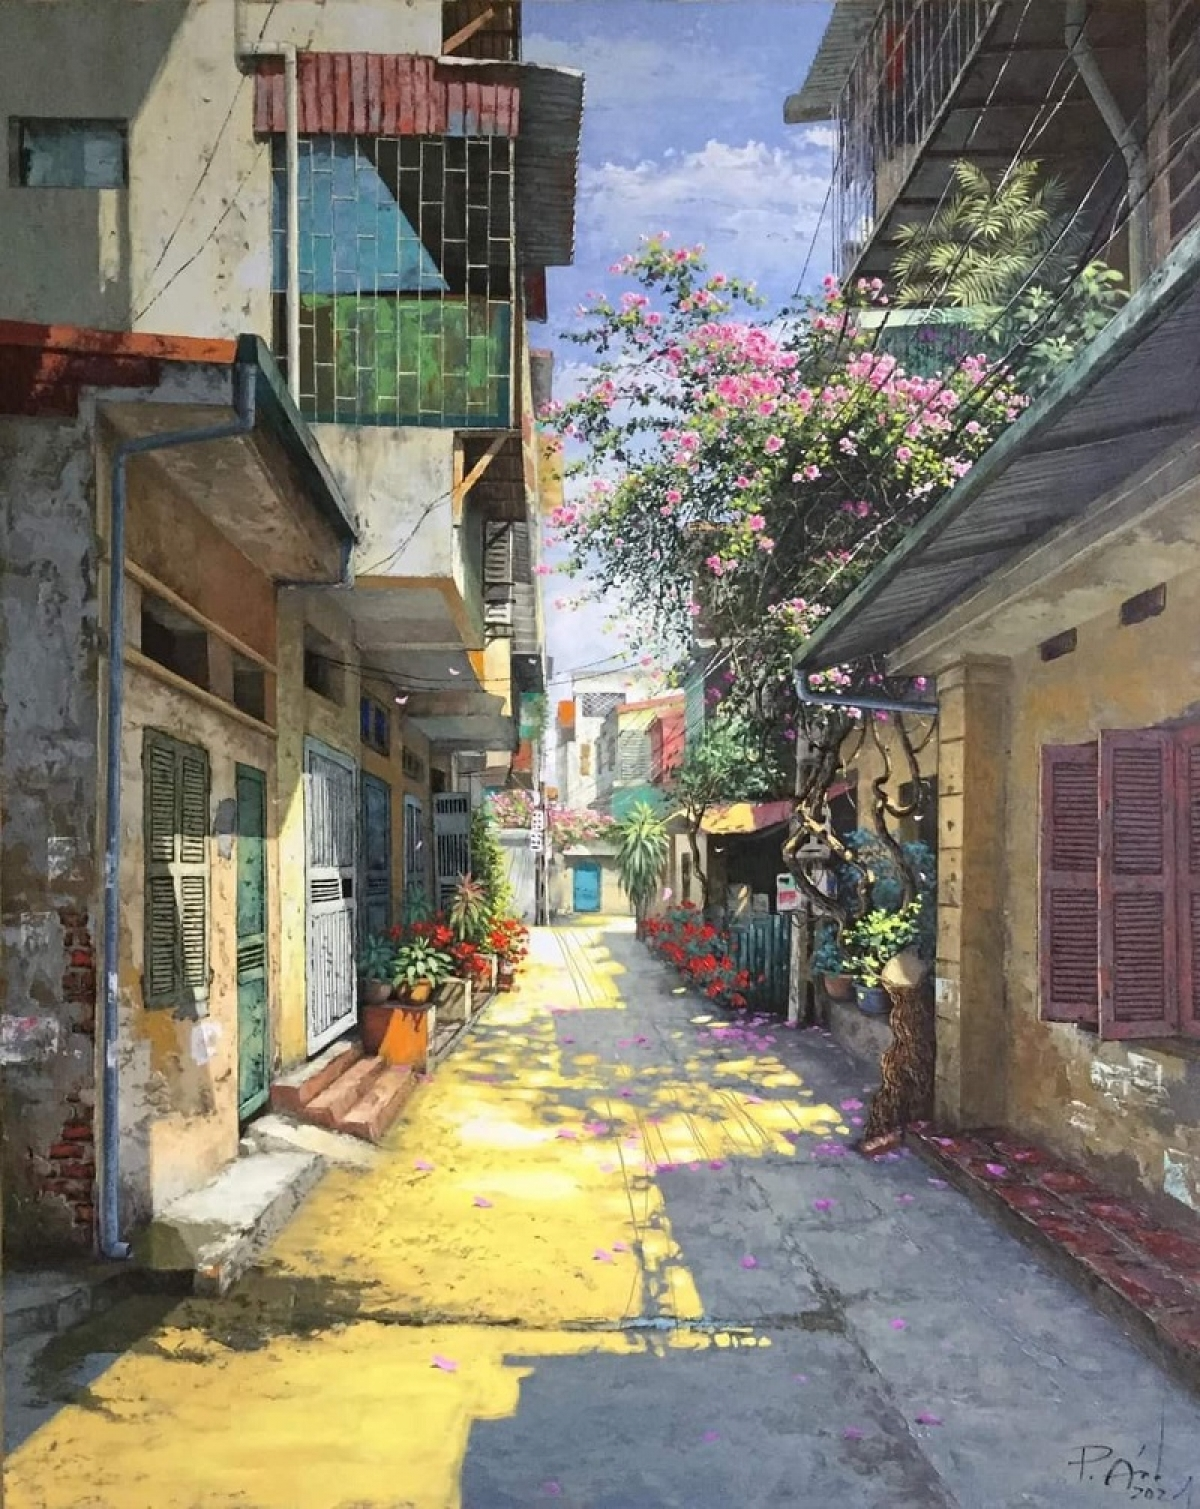 The simple alleys in Hanoi are something ordinary to many people, but they are vividly beautiful to Pham Anh.